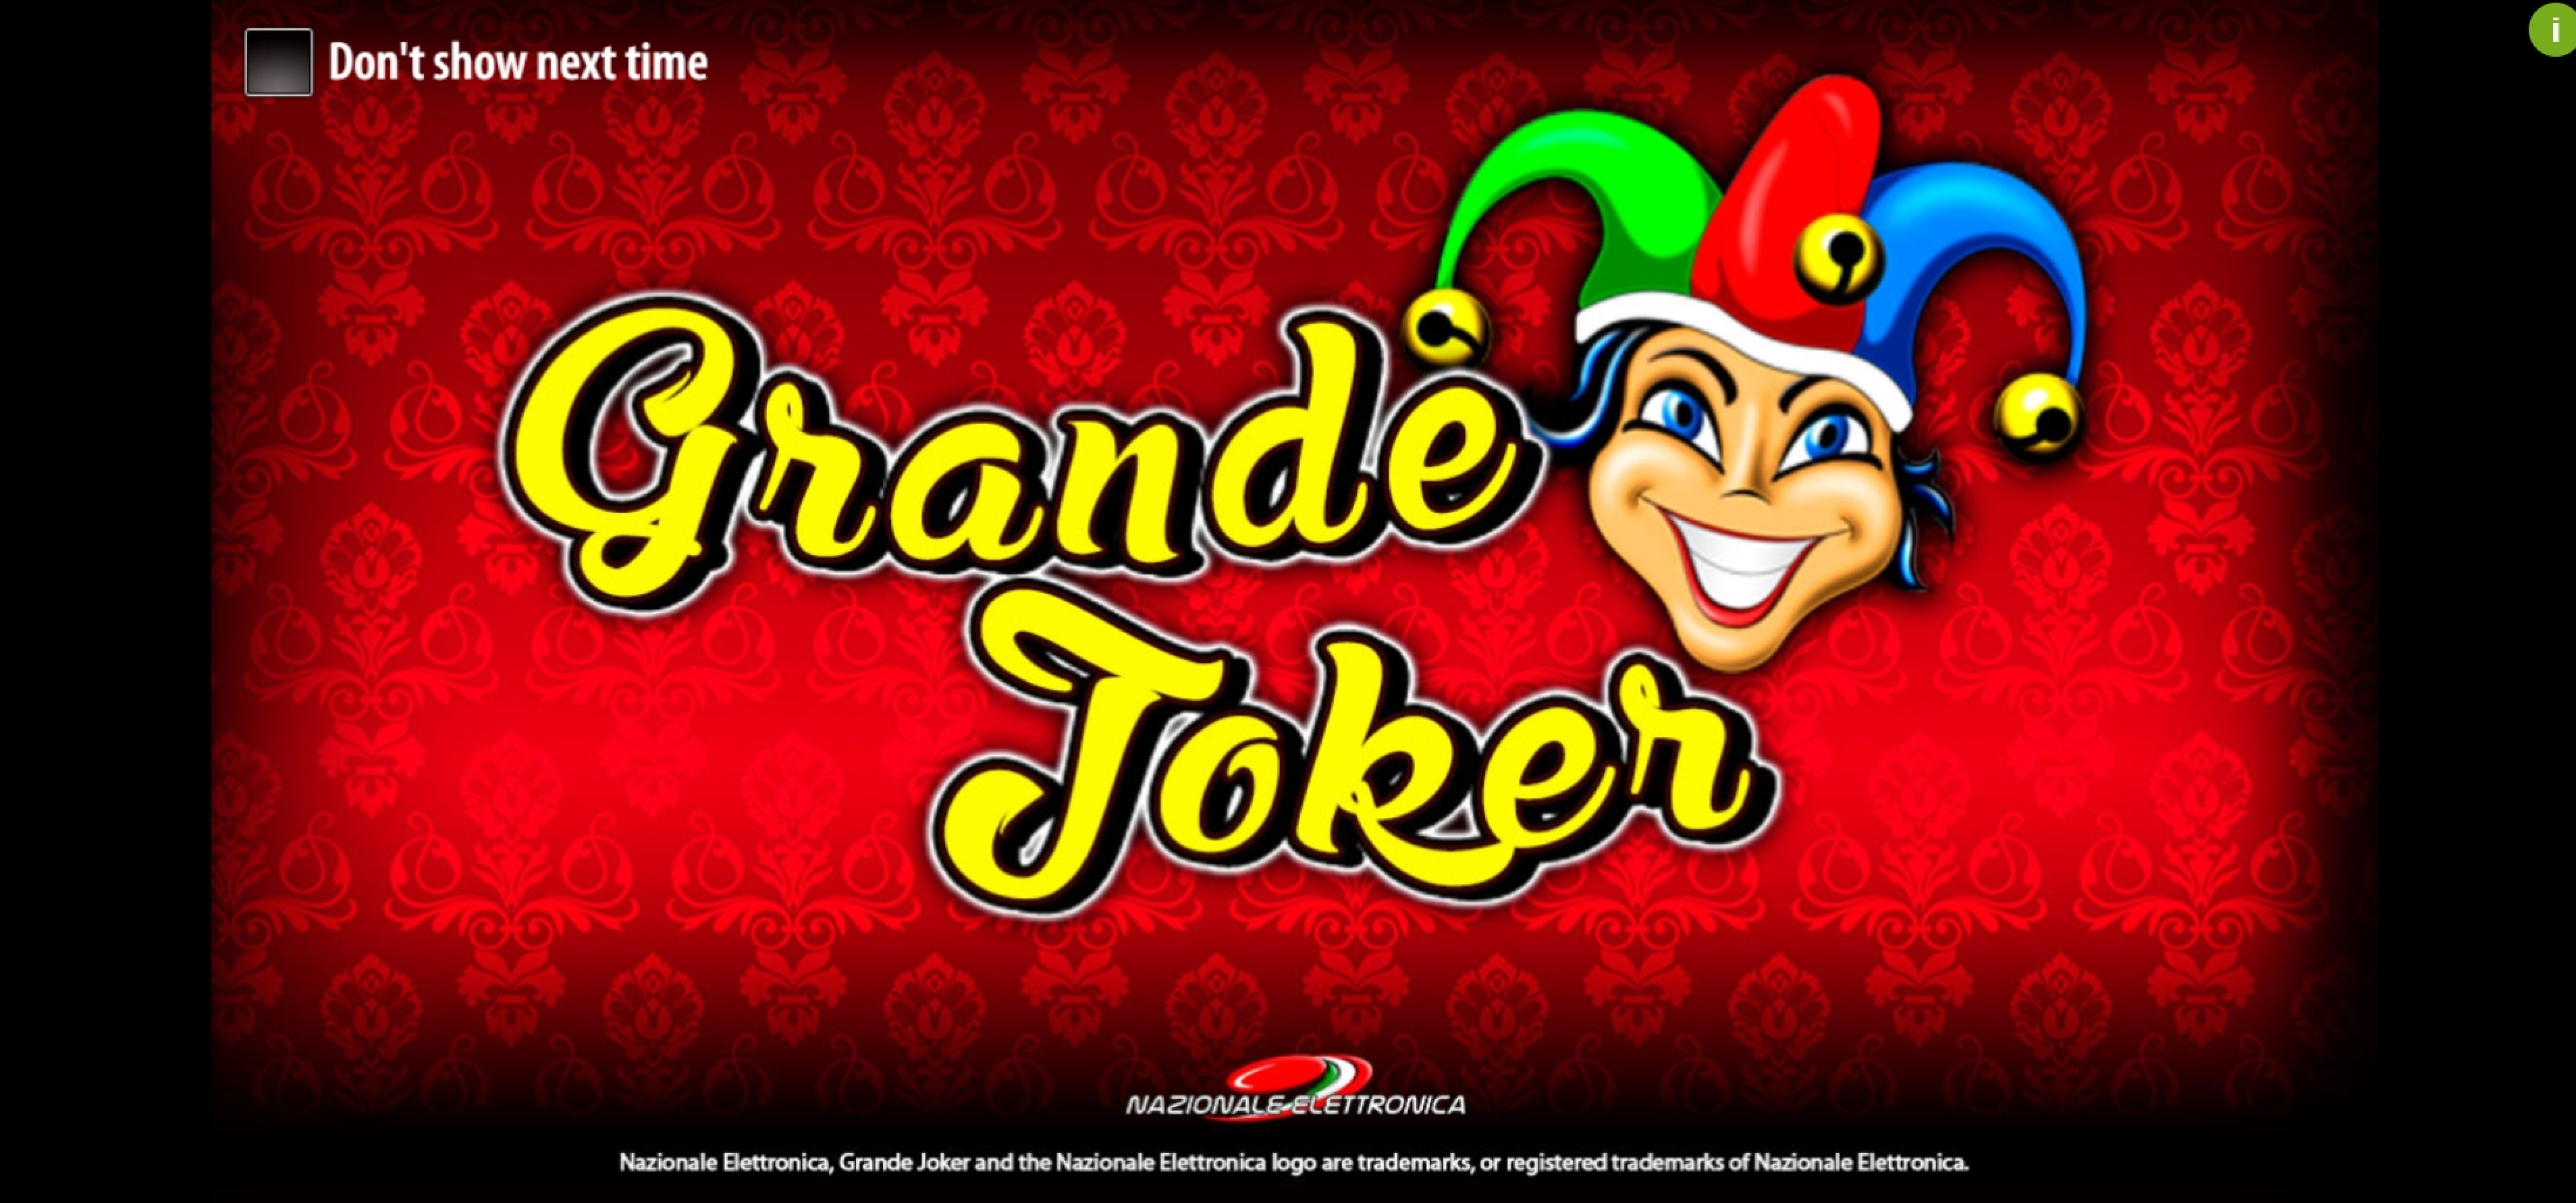 Play Grande Joker Free Casino Slot Game by Nazionale Elettronica